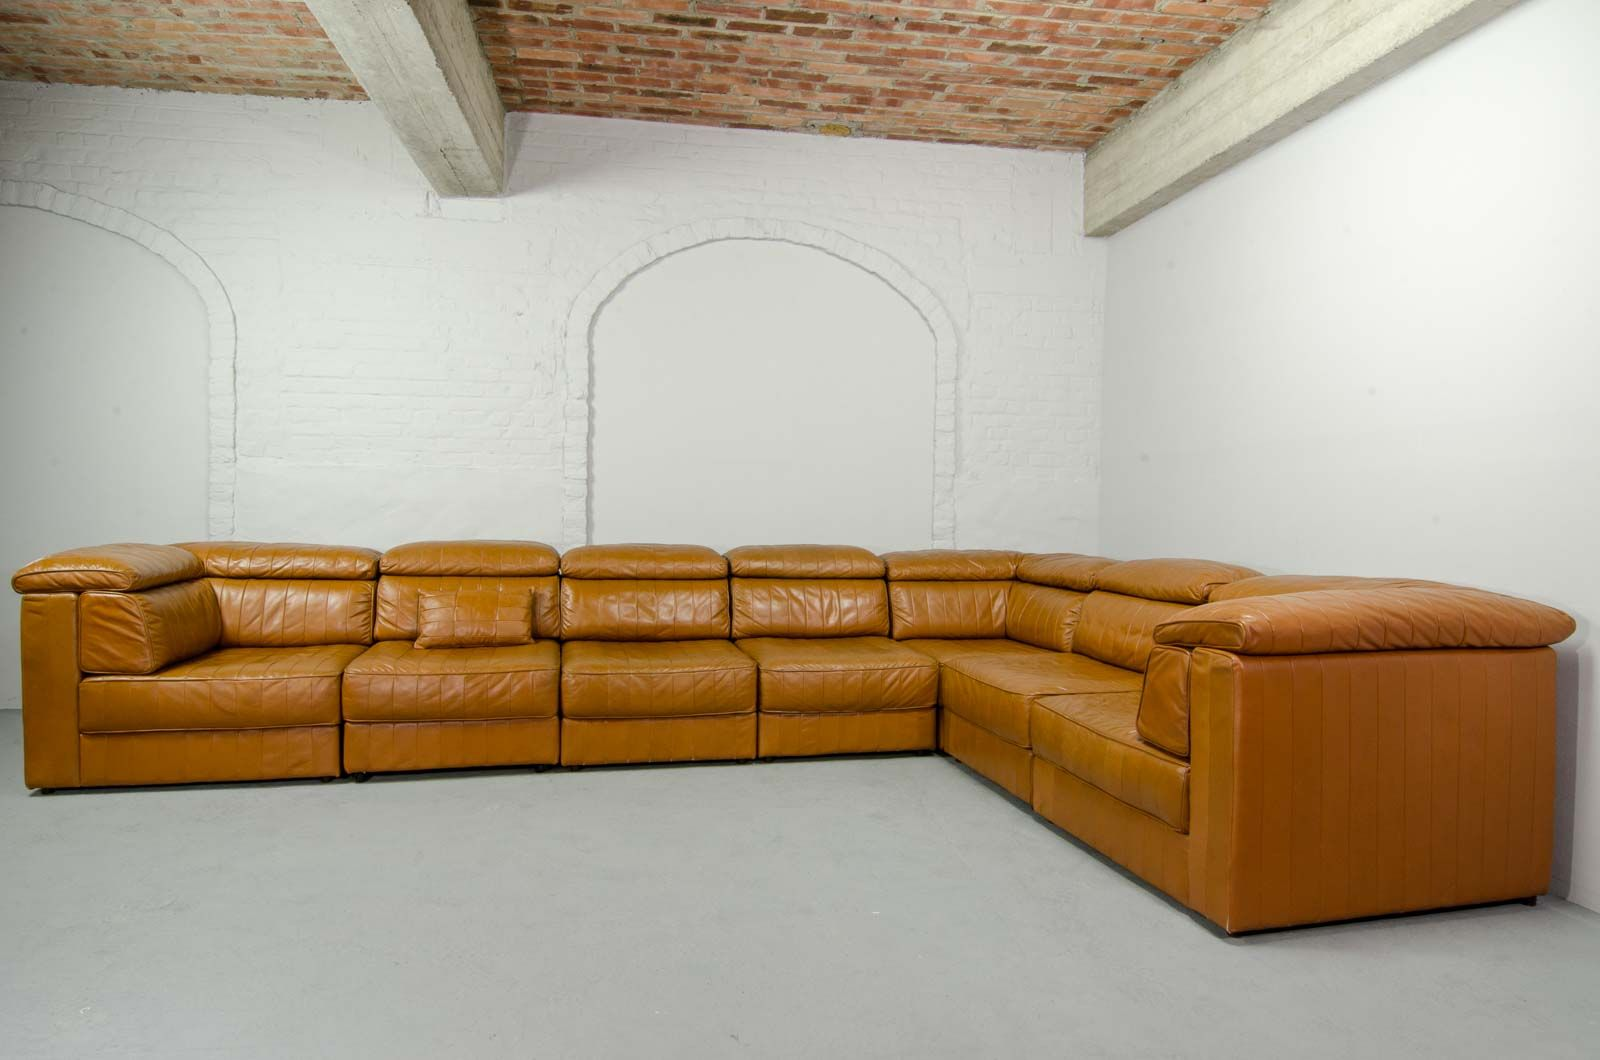 Mid century modular patchwork sofa by laauser 1970s for sale at mid century modular patchwork sofa by laauser 1970s parisarafo Image collections